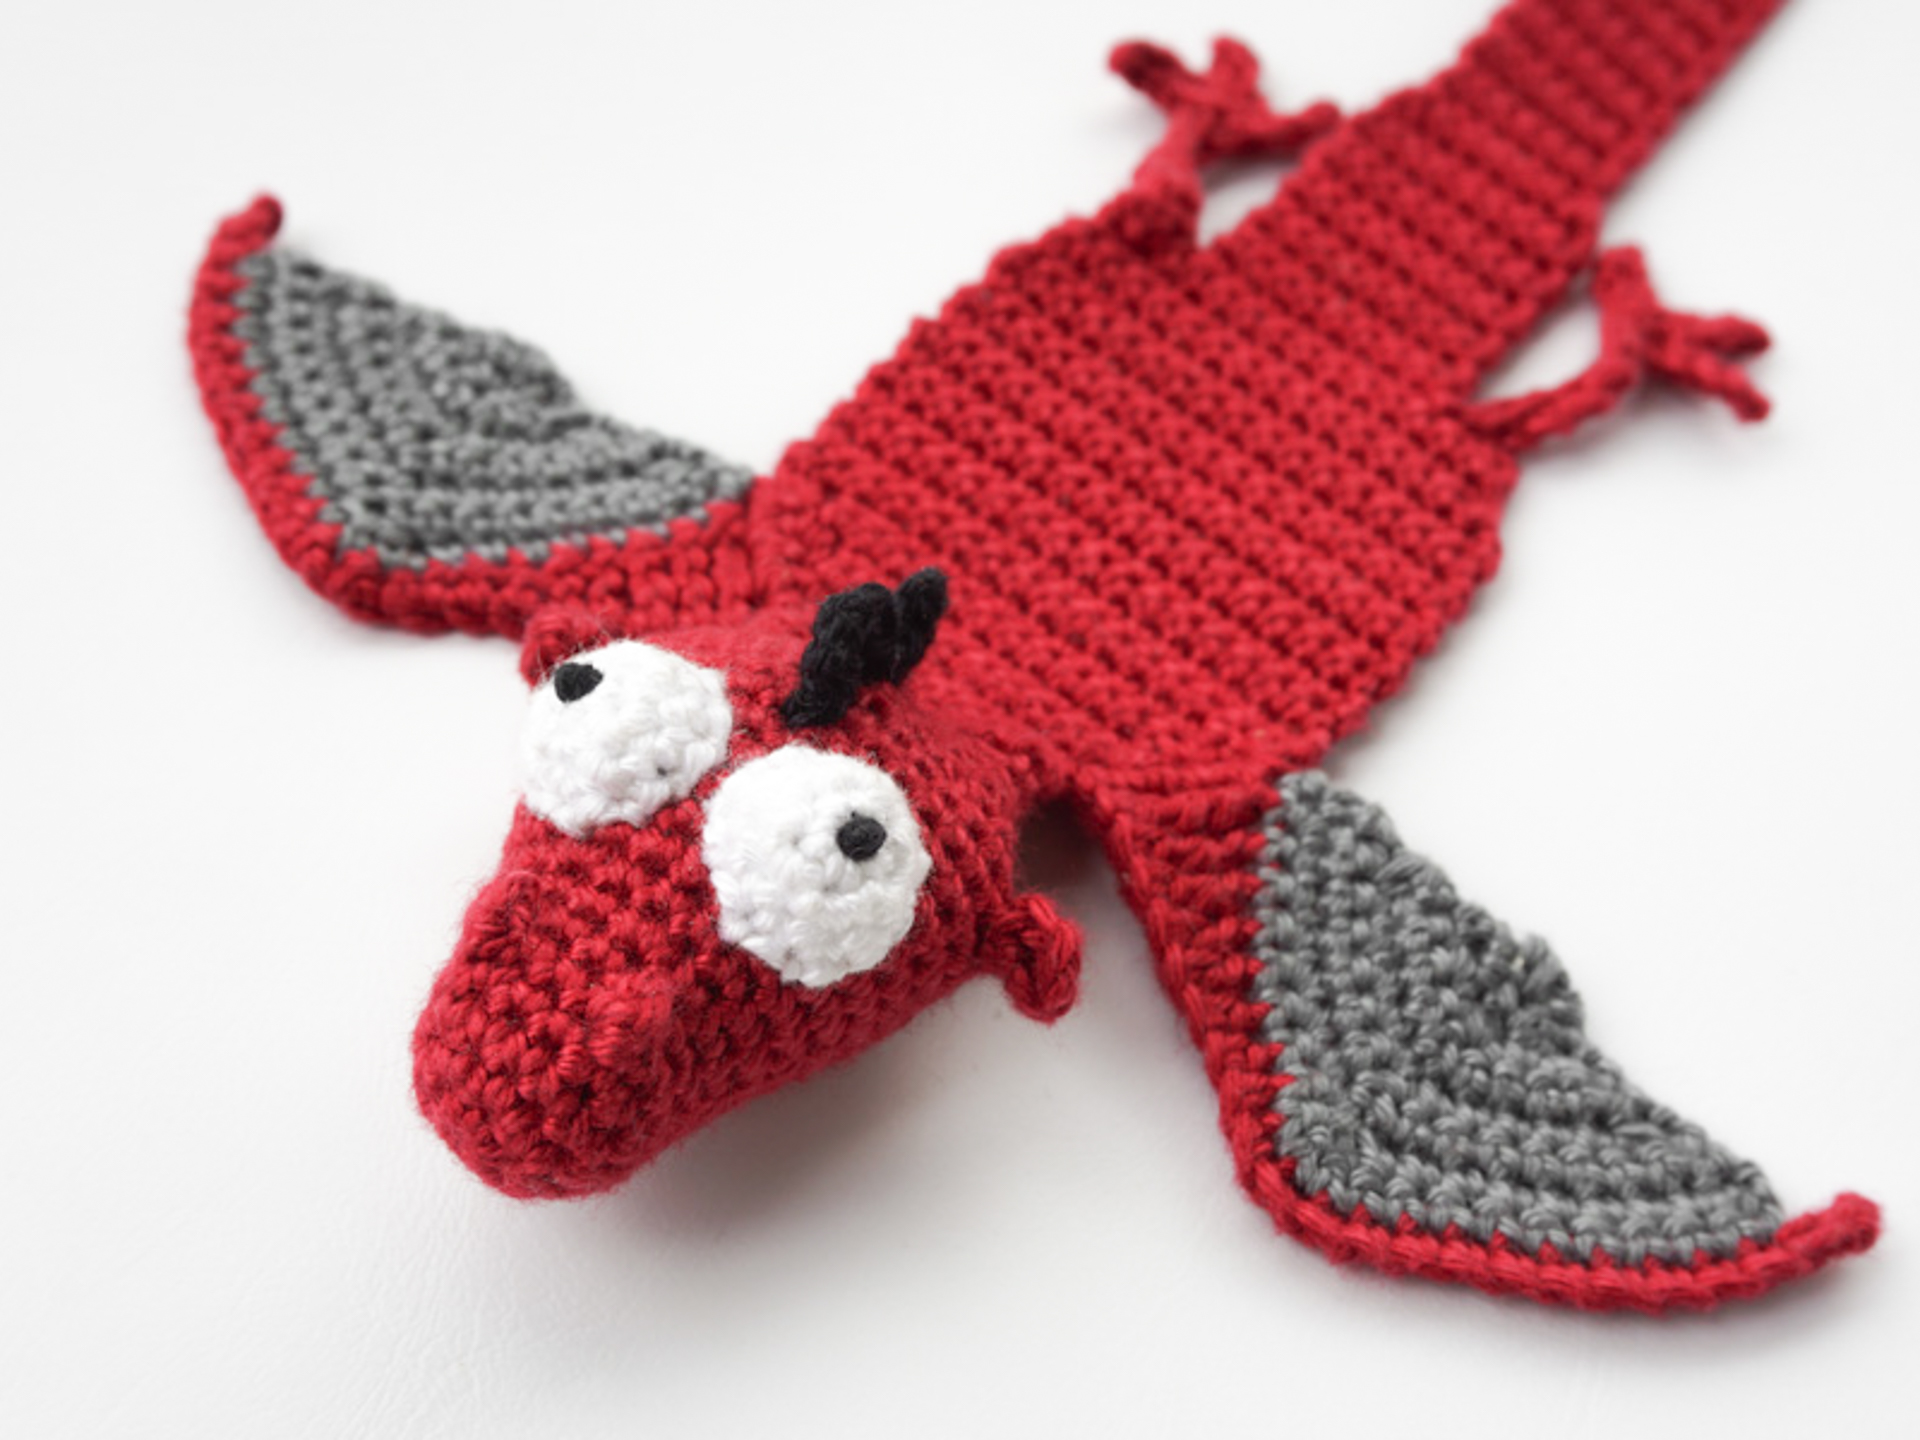 22 Totally Adorable Amigurumi Dragon Patterns You Need to Make for ... | 1440x1920